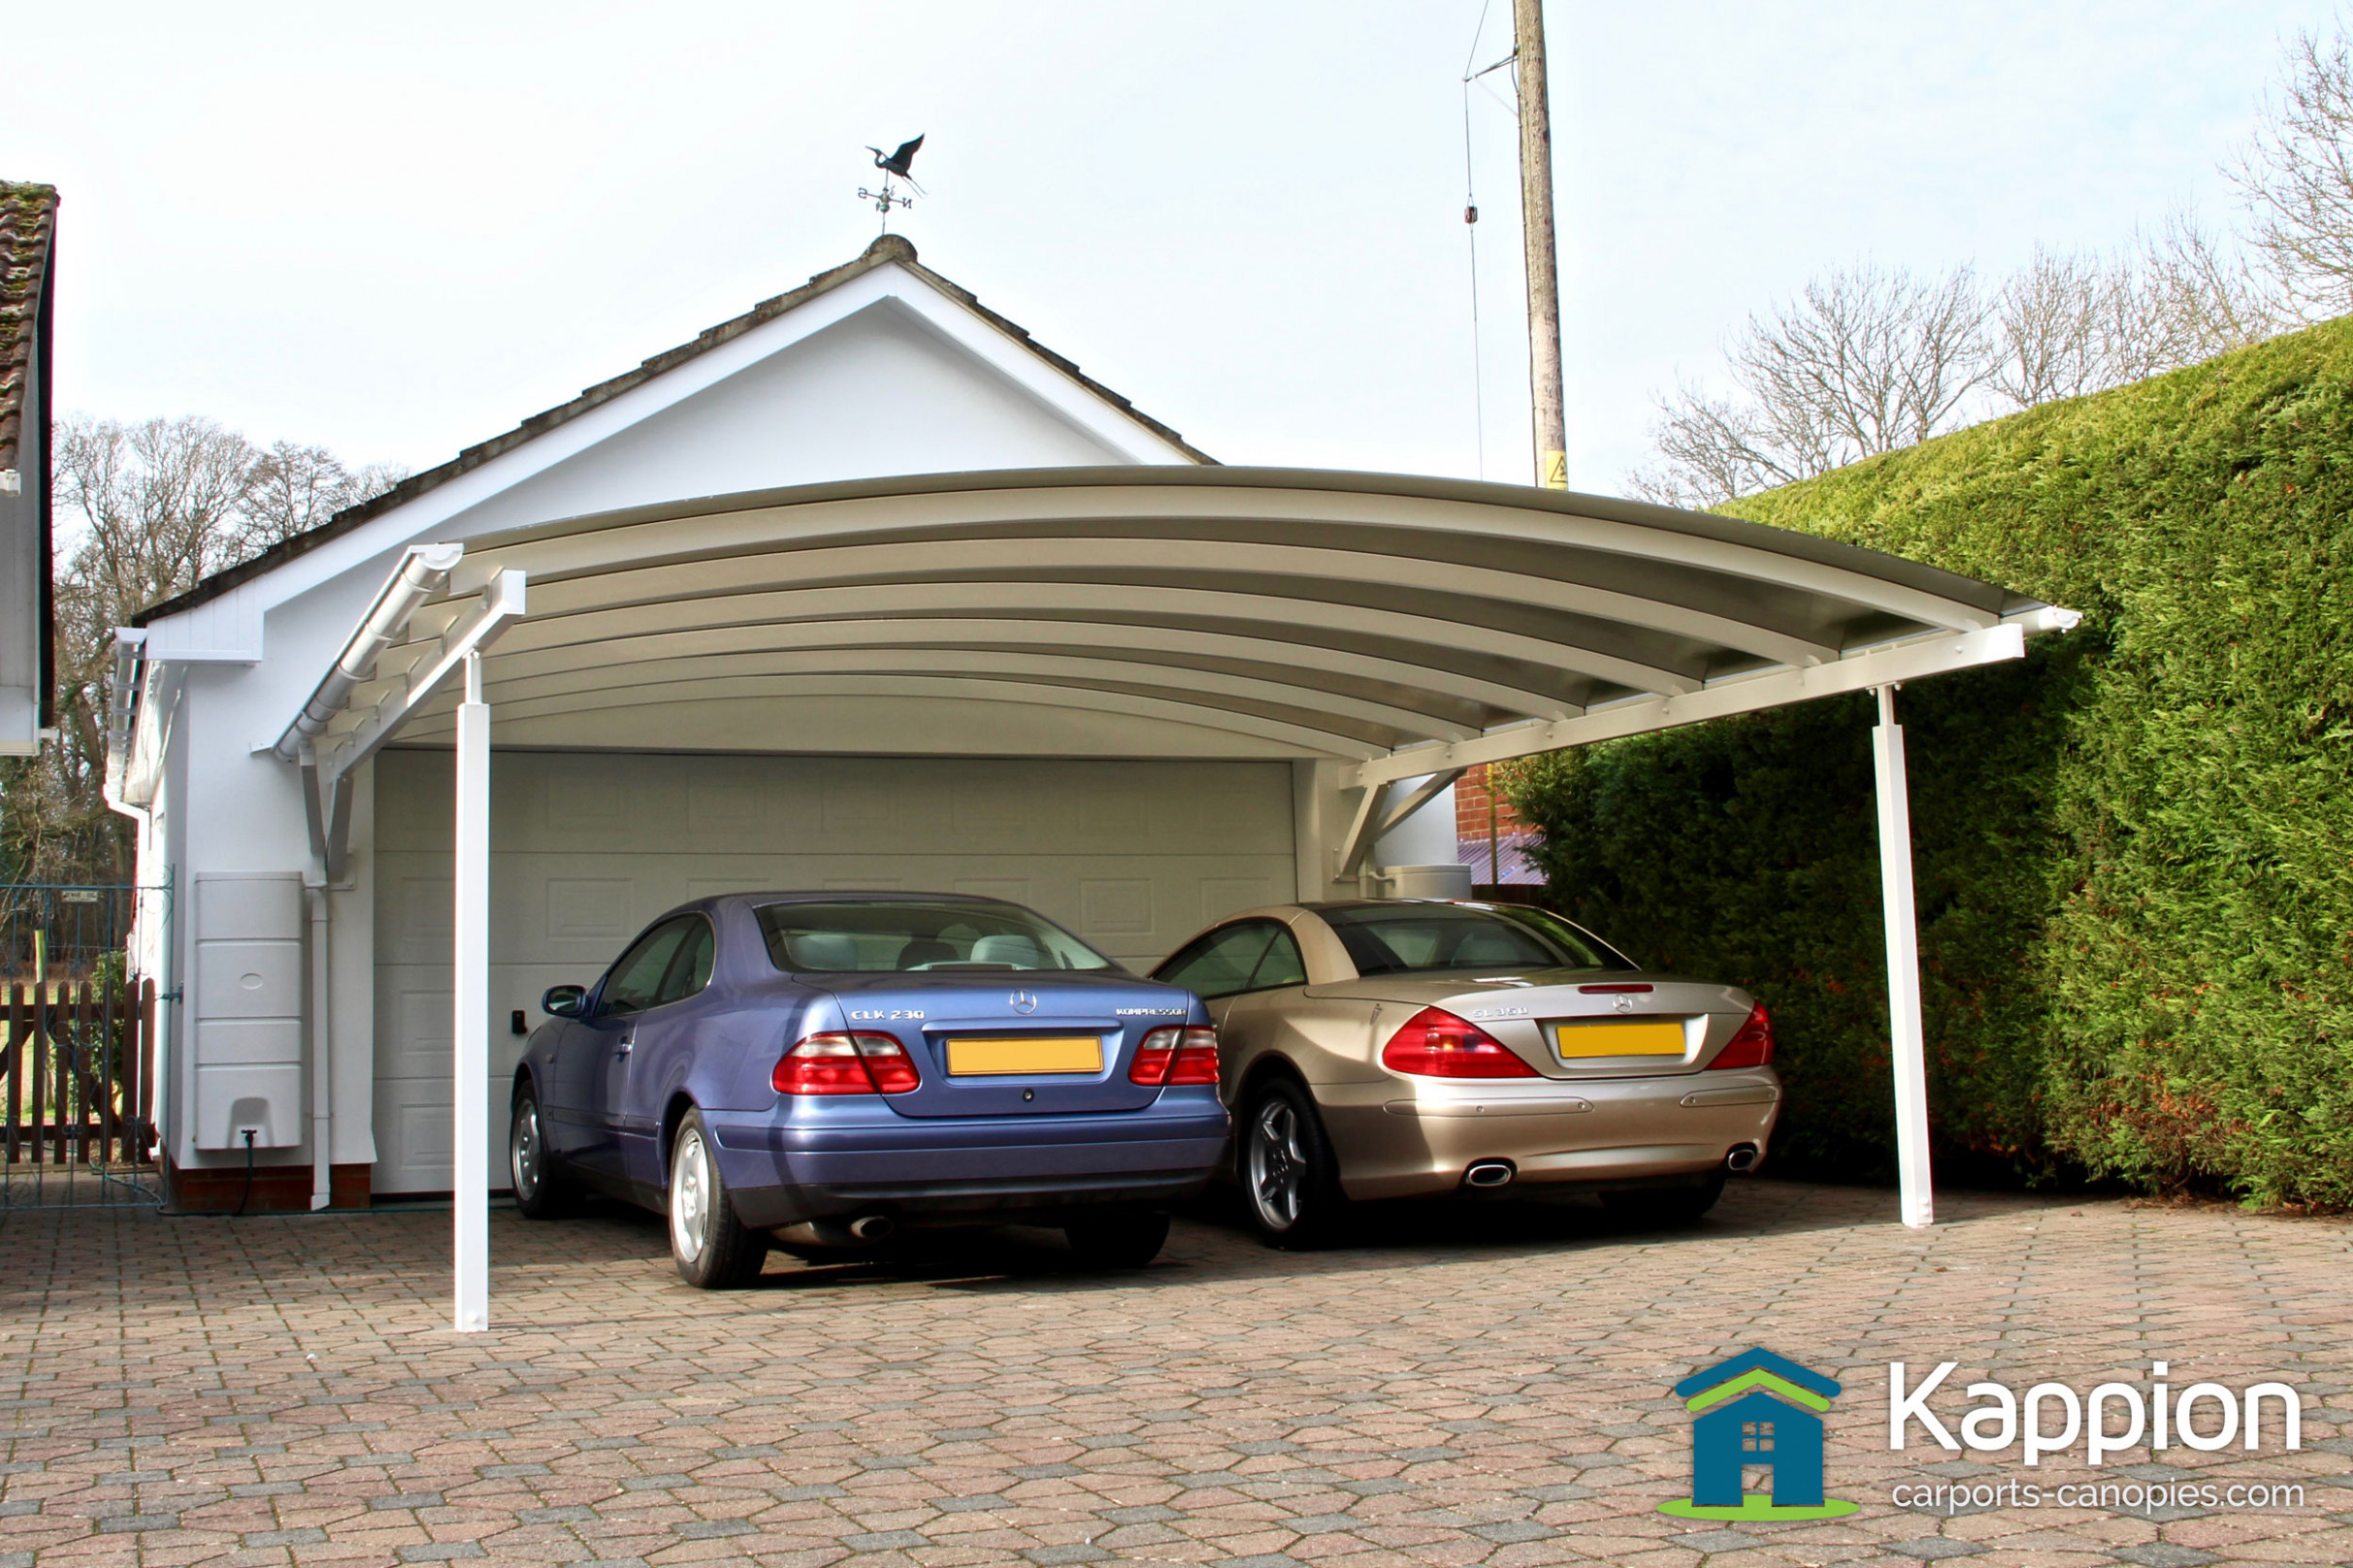 Double Carport Canopy Installed In Salisbury | Kappion ..